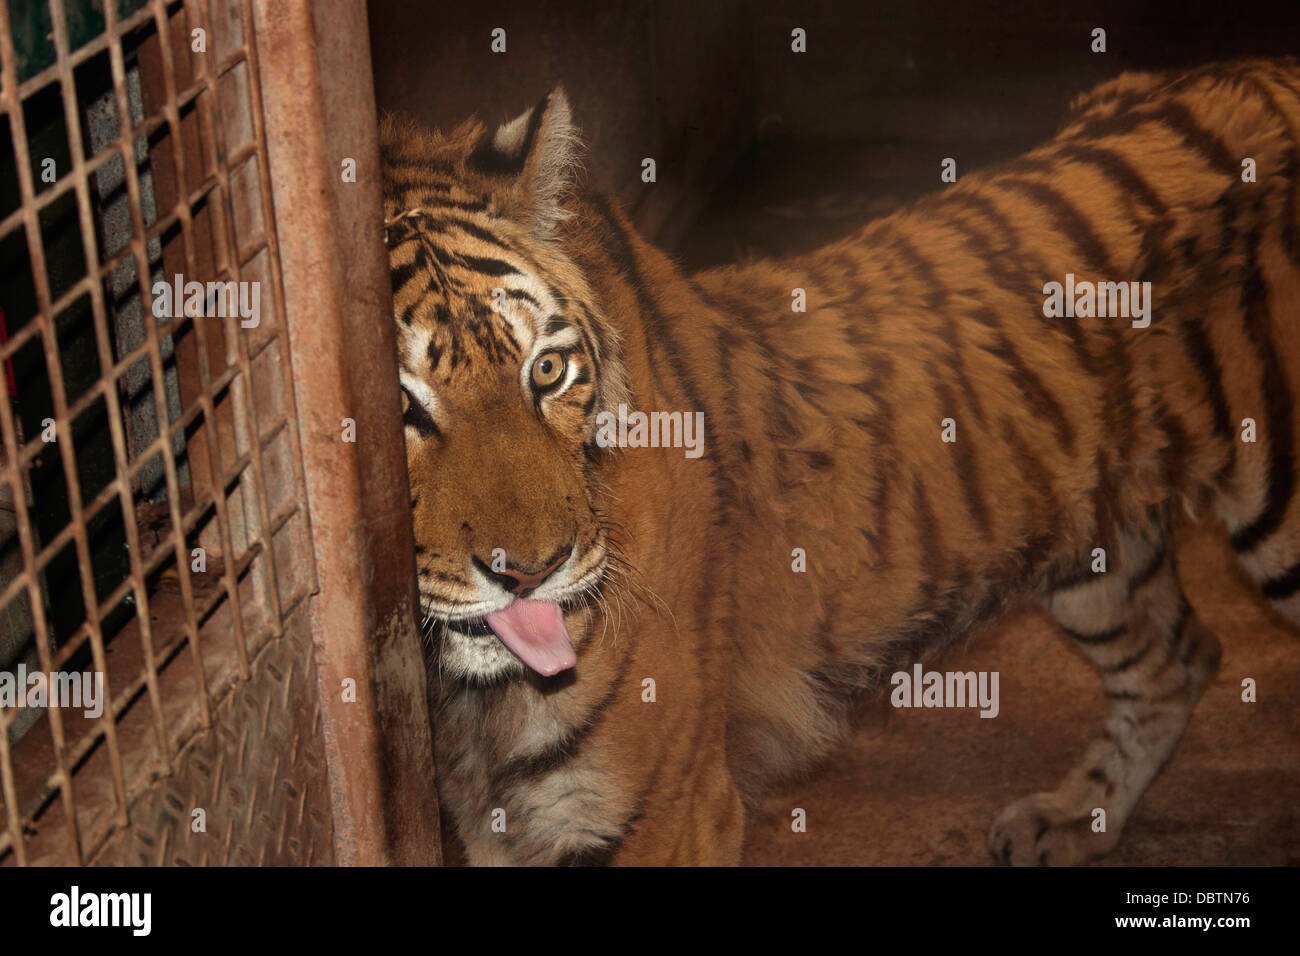 Old and underweight Tiger kept in captivity - Stock Image